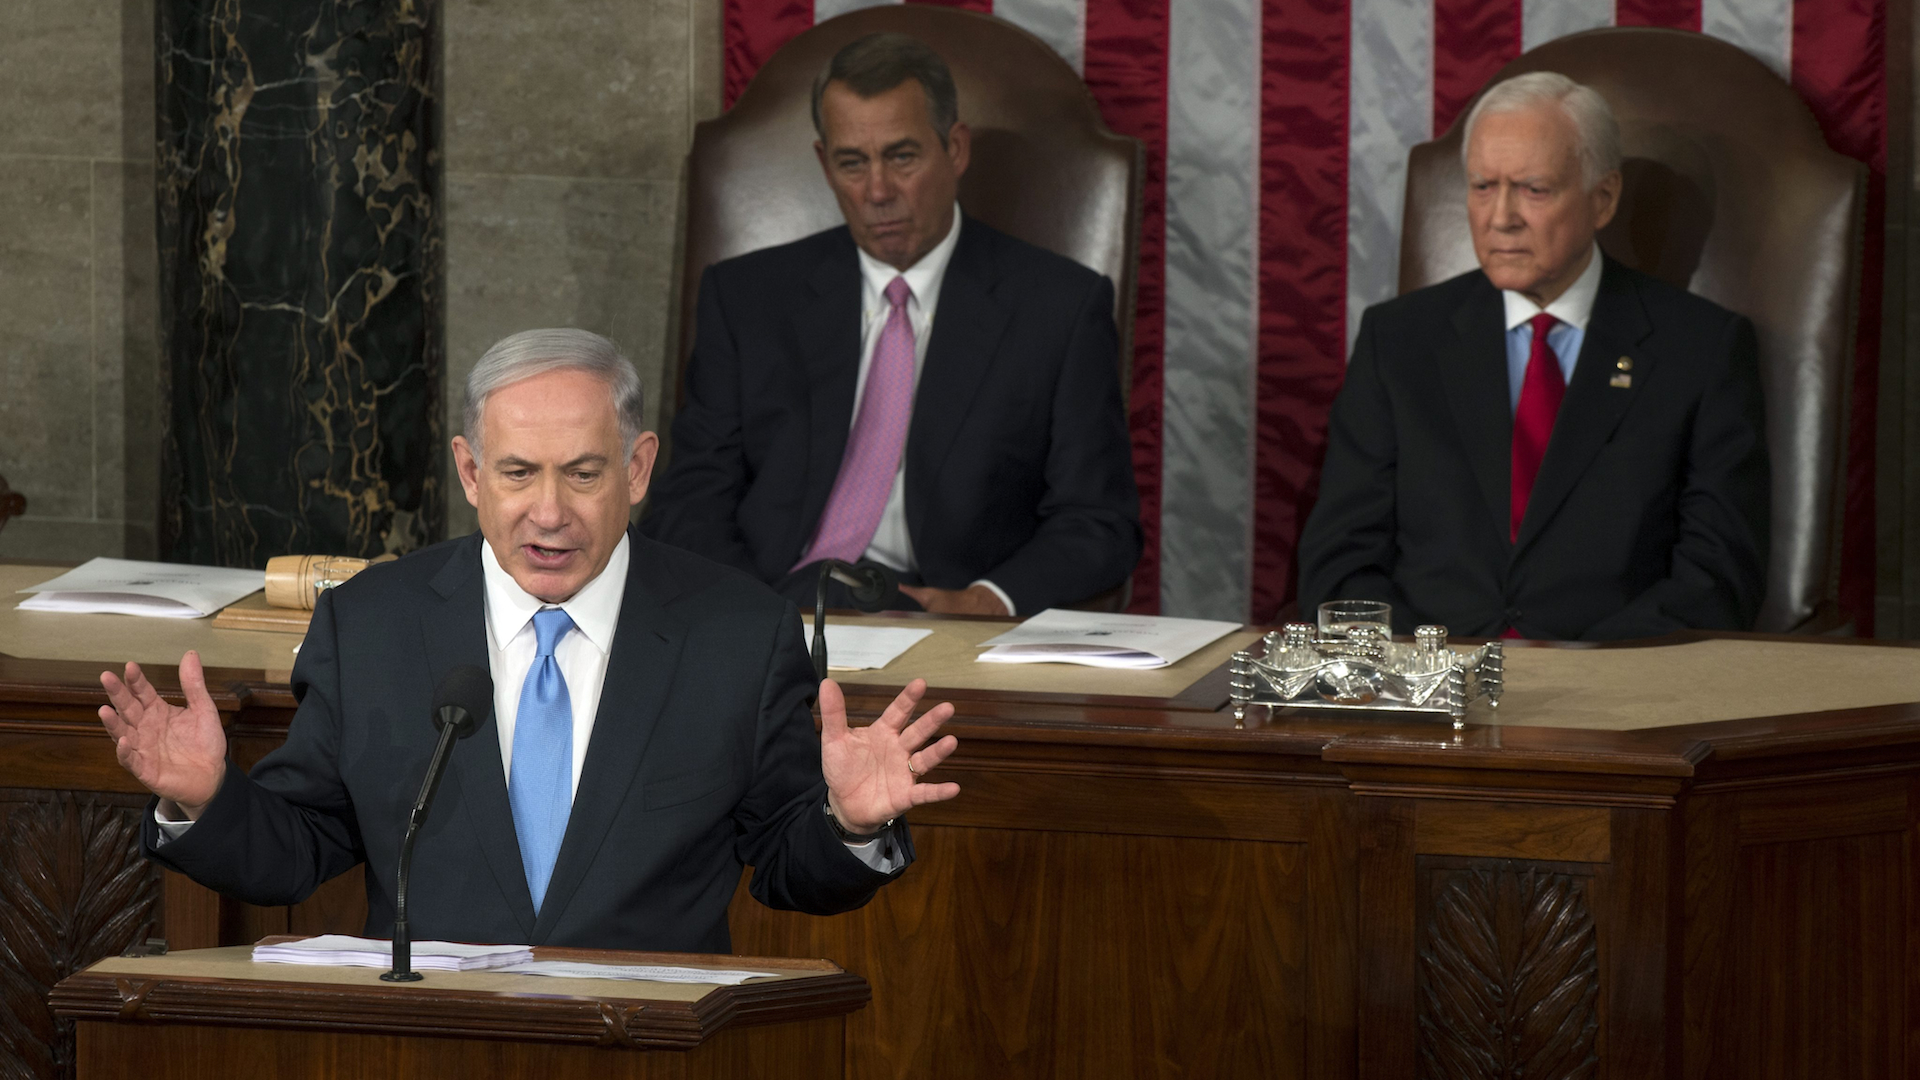 Netanyahu says U.S. is on verge of 'bad deal' with Iran over nuclear program